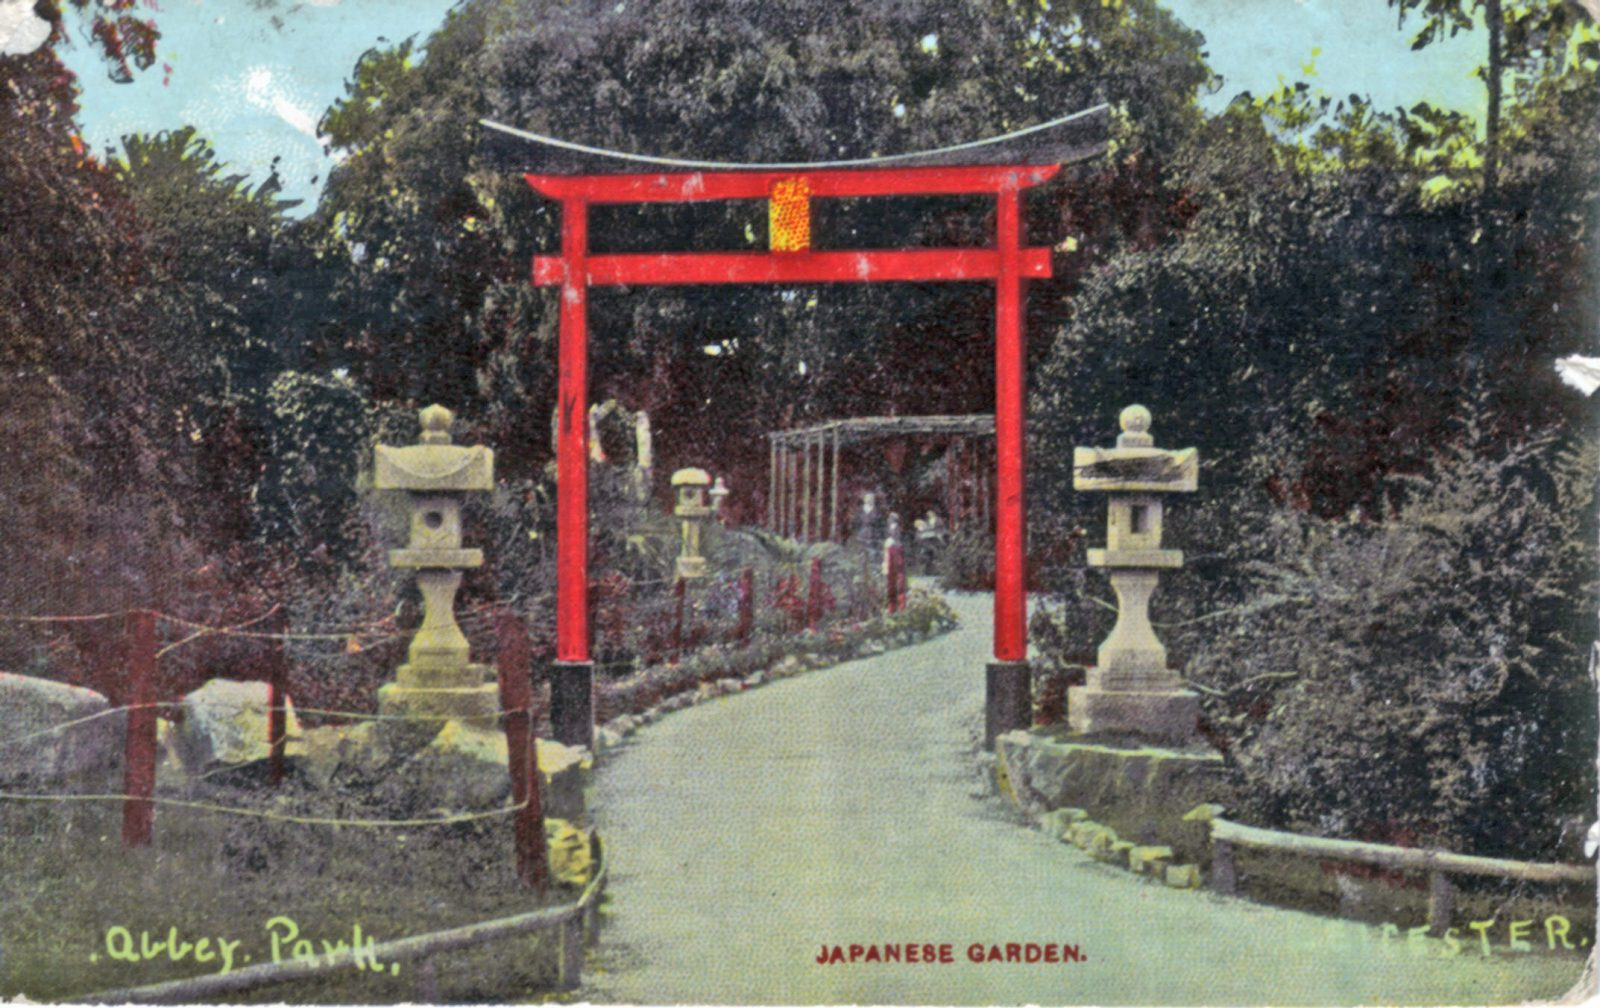 Abbey Park, Leicester. Undated: Entrance to Japanese Garden with Japanese lanterns. Franked 1905 (File:1183)